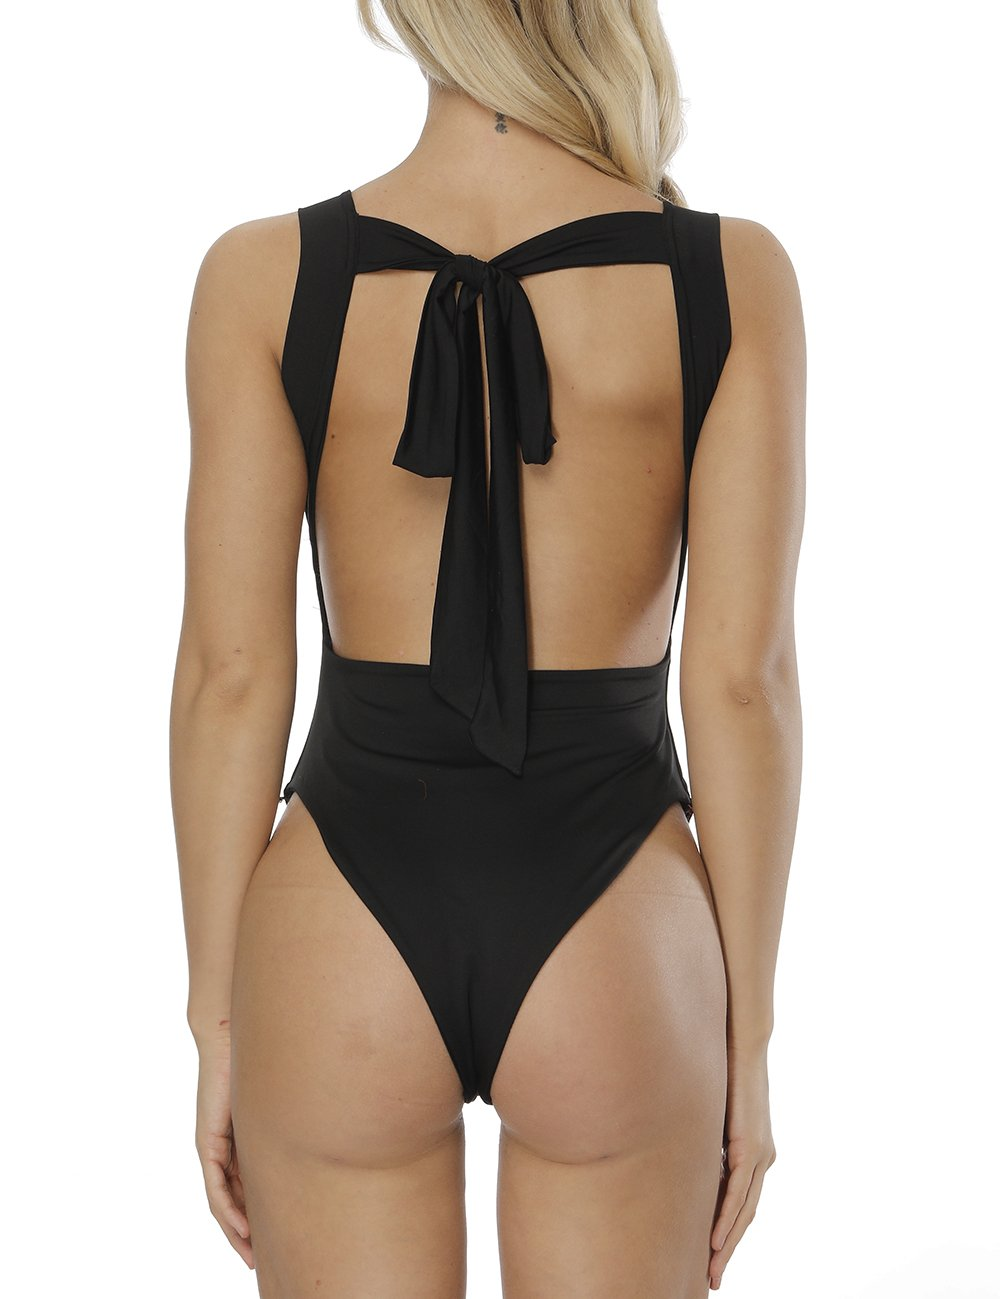 Cuihur Women's Summer Sleeveless Bodysuit Backless Stretchy Jumpsuits Rompers L Black by Cuihur (Image #3)